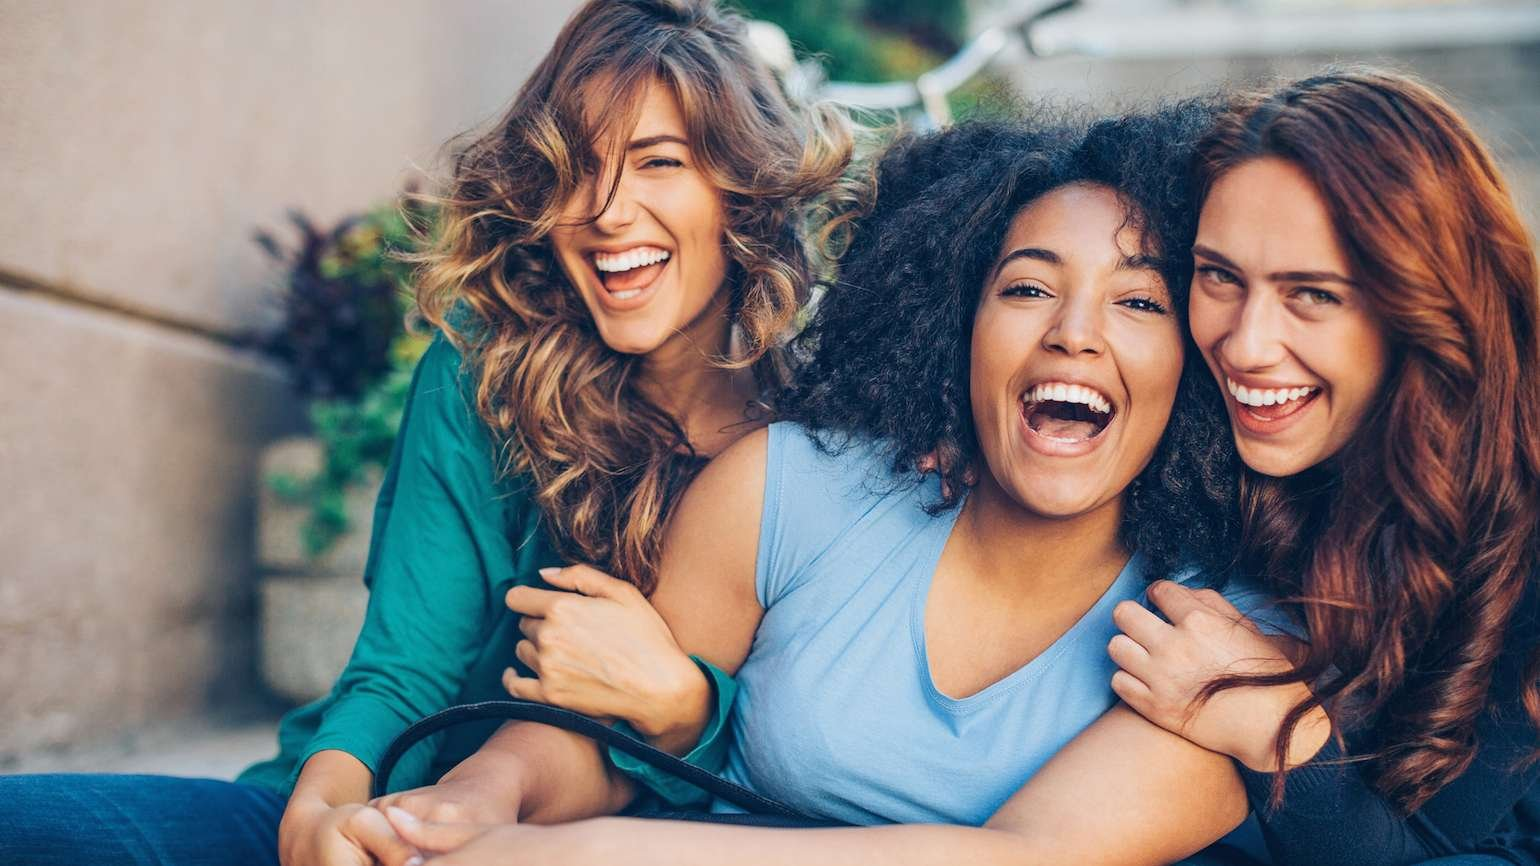 girlfriends.jpg?resize=1200,630 - Do You Want To Have A Longer, Happier, And Healthier Life? Planning A Trip With Your Girls Might Be The Answer